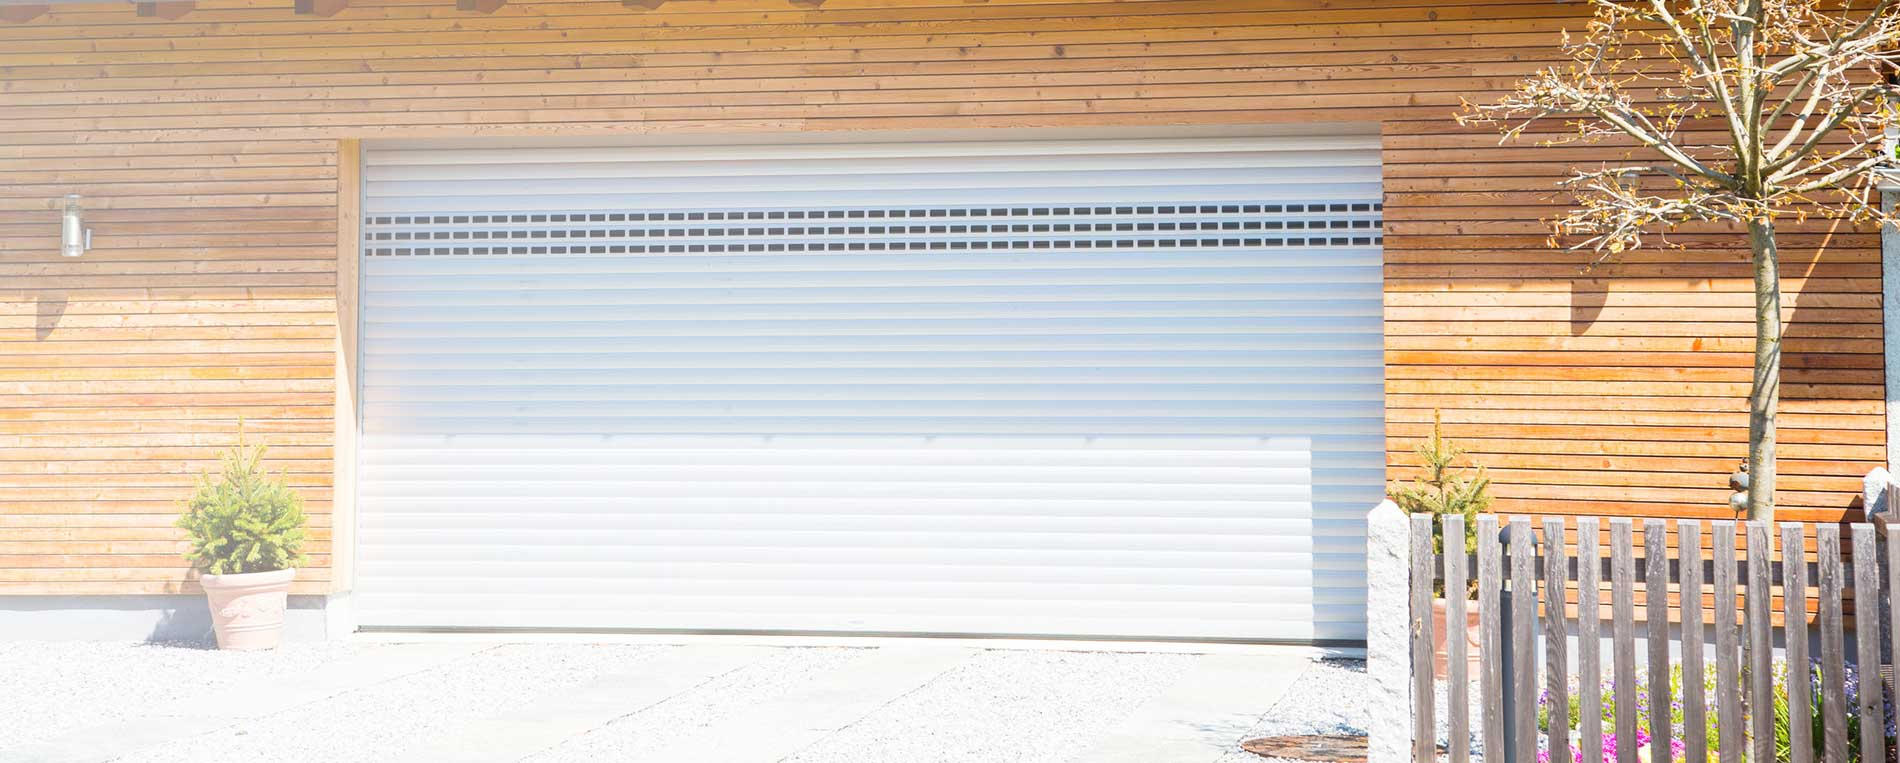 Incroyable Garage Door Repair San Mateo, CA